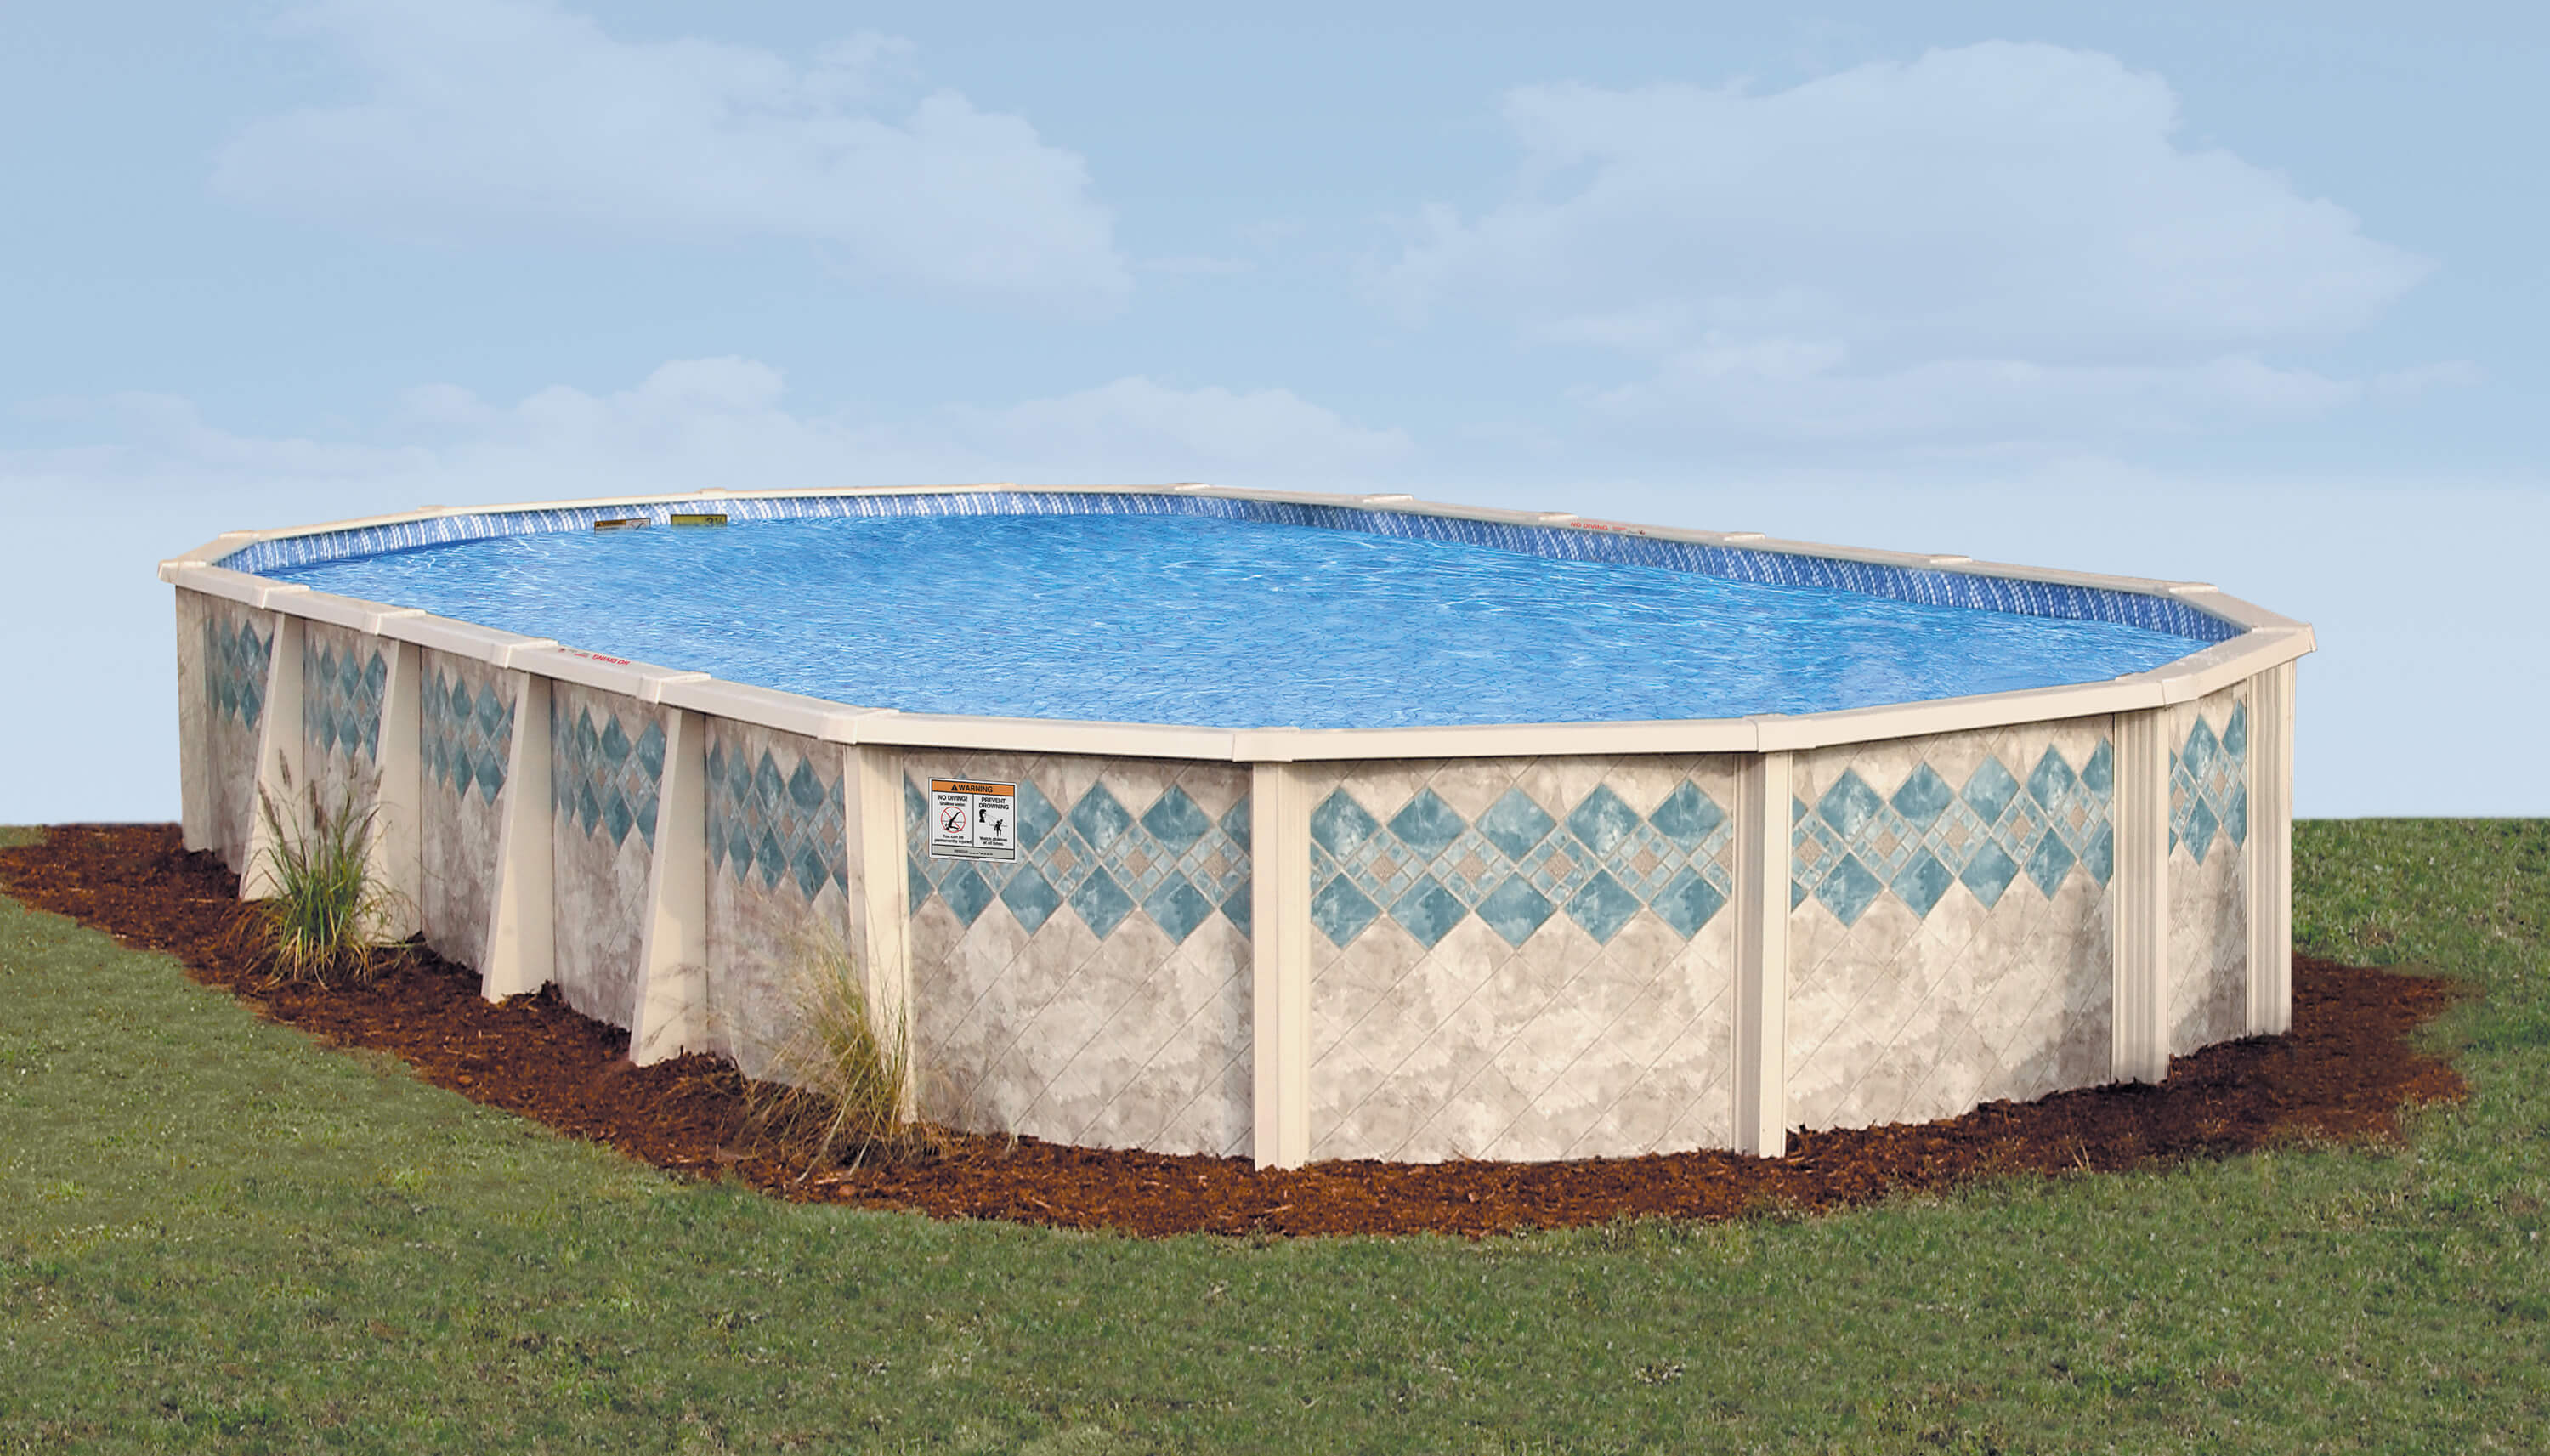 This Is A Photo Of The Oval Above Ground Pool